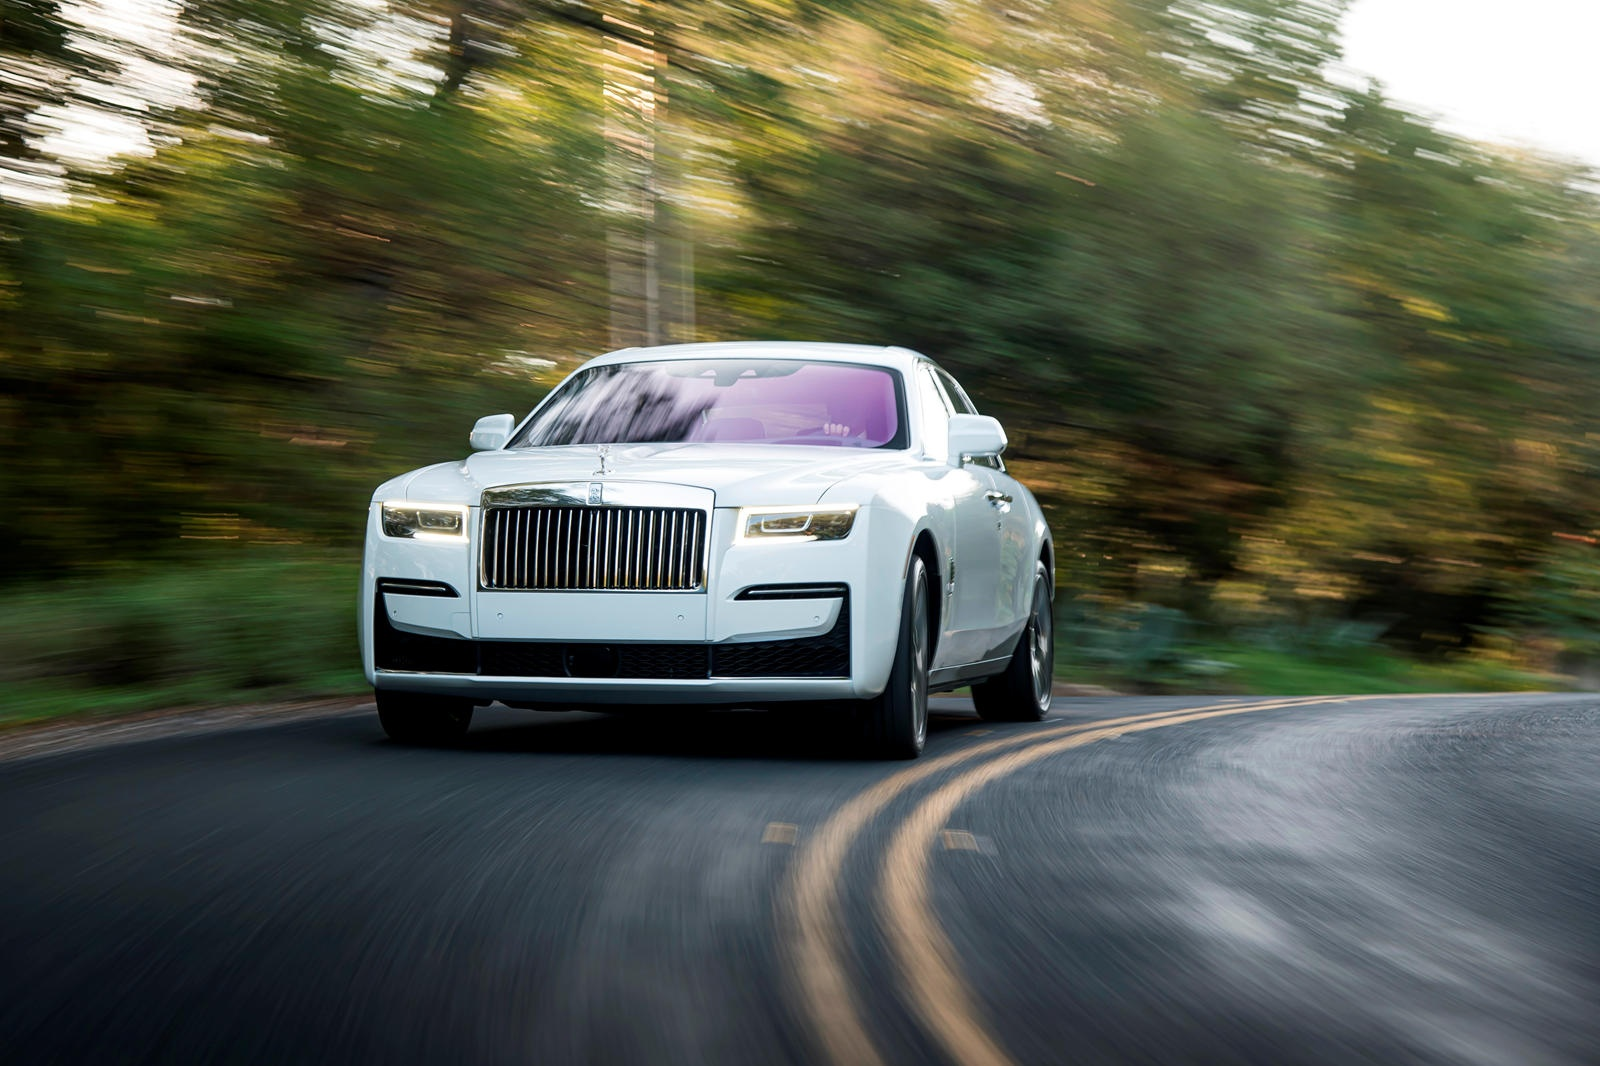 Danh gia Rolls-Royce Ghost 2021 anh 25